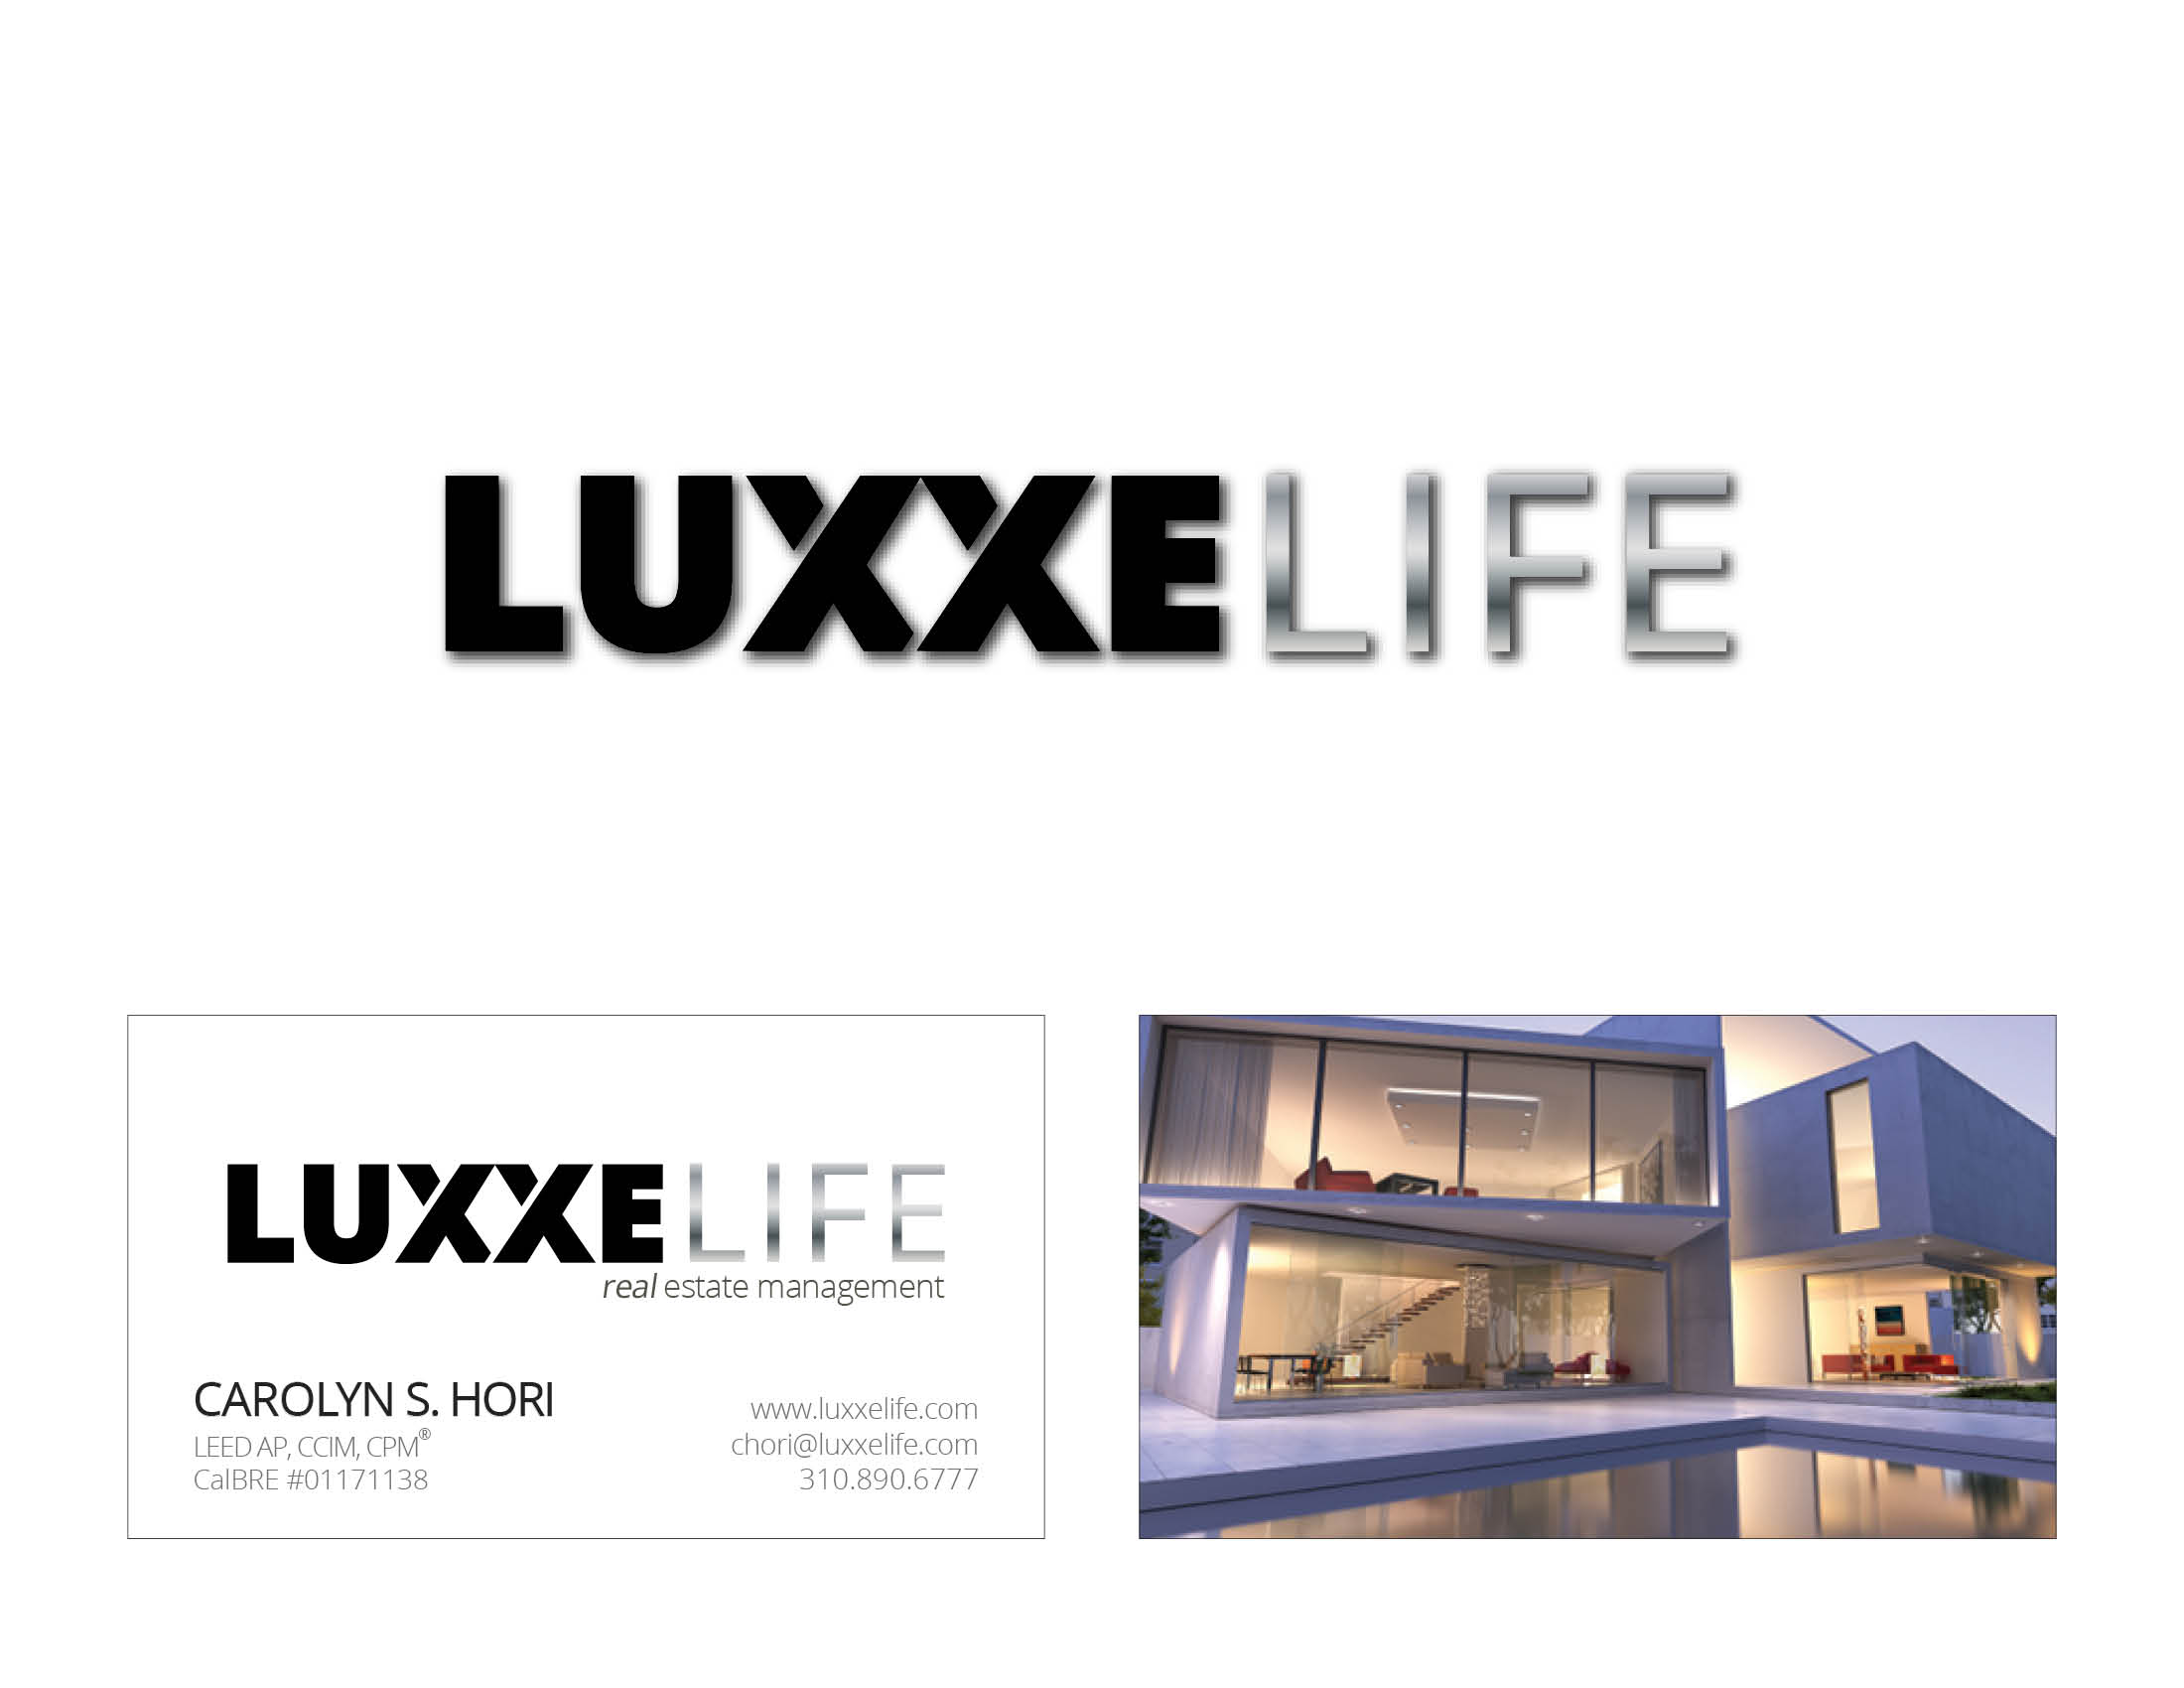 Luxxe Life logo & business card